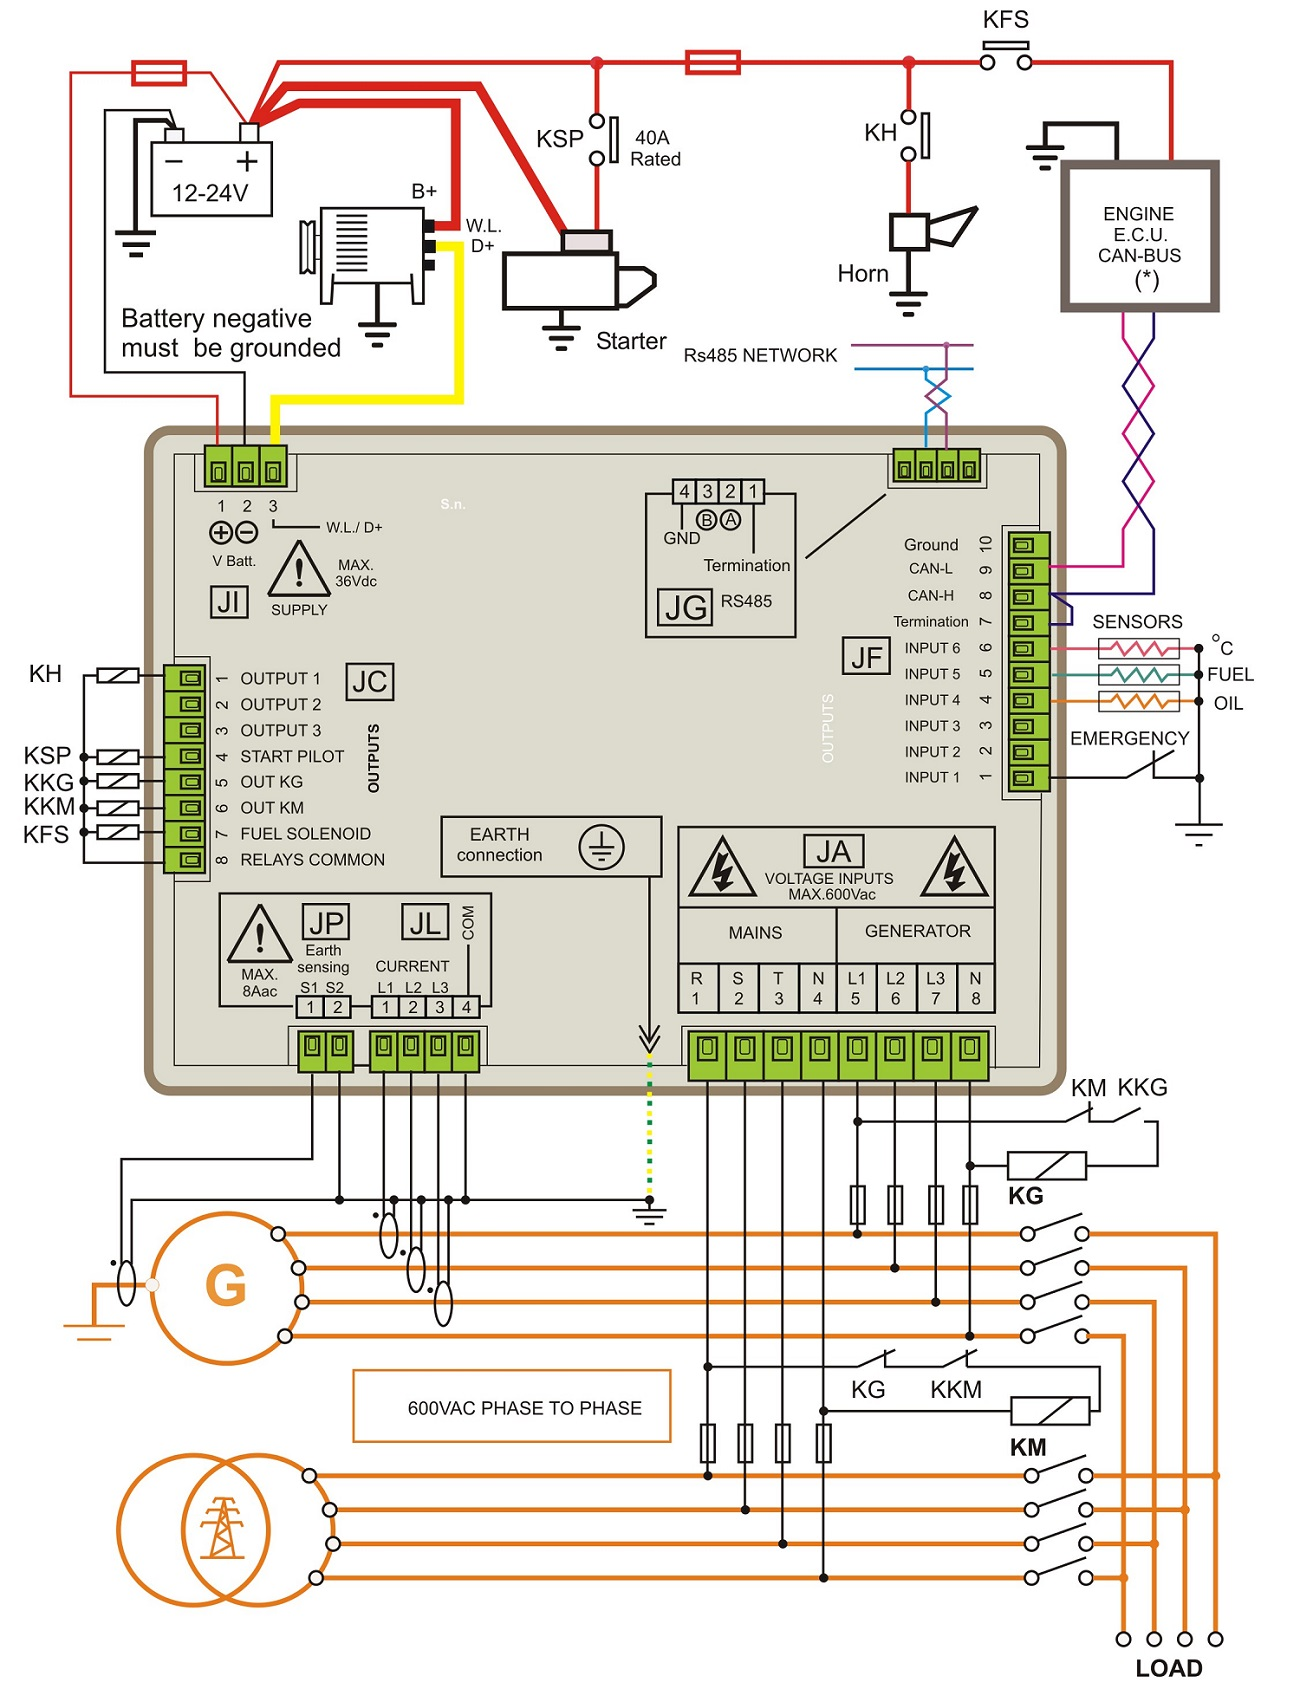 Volvo Penta Ignition Wiring Diagram Wiring Harness Wiring Diagram